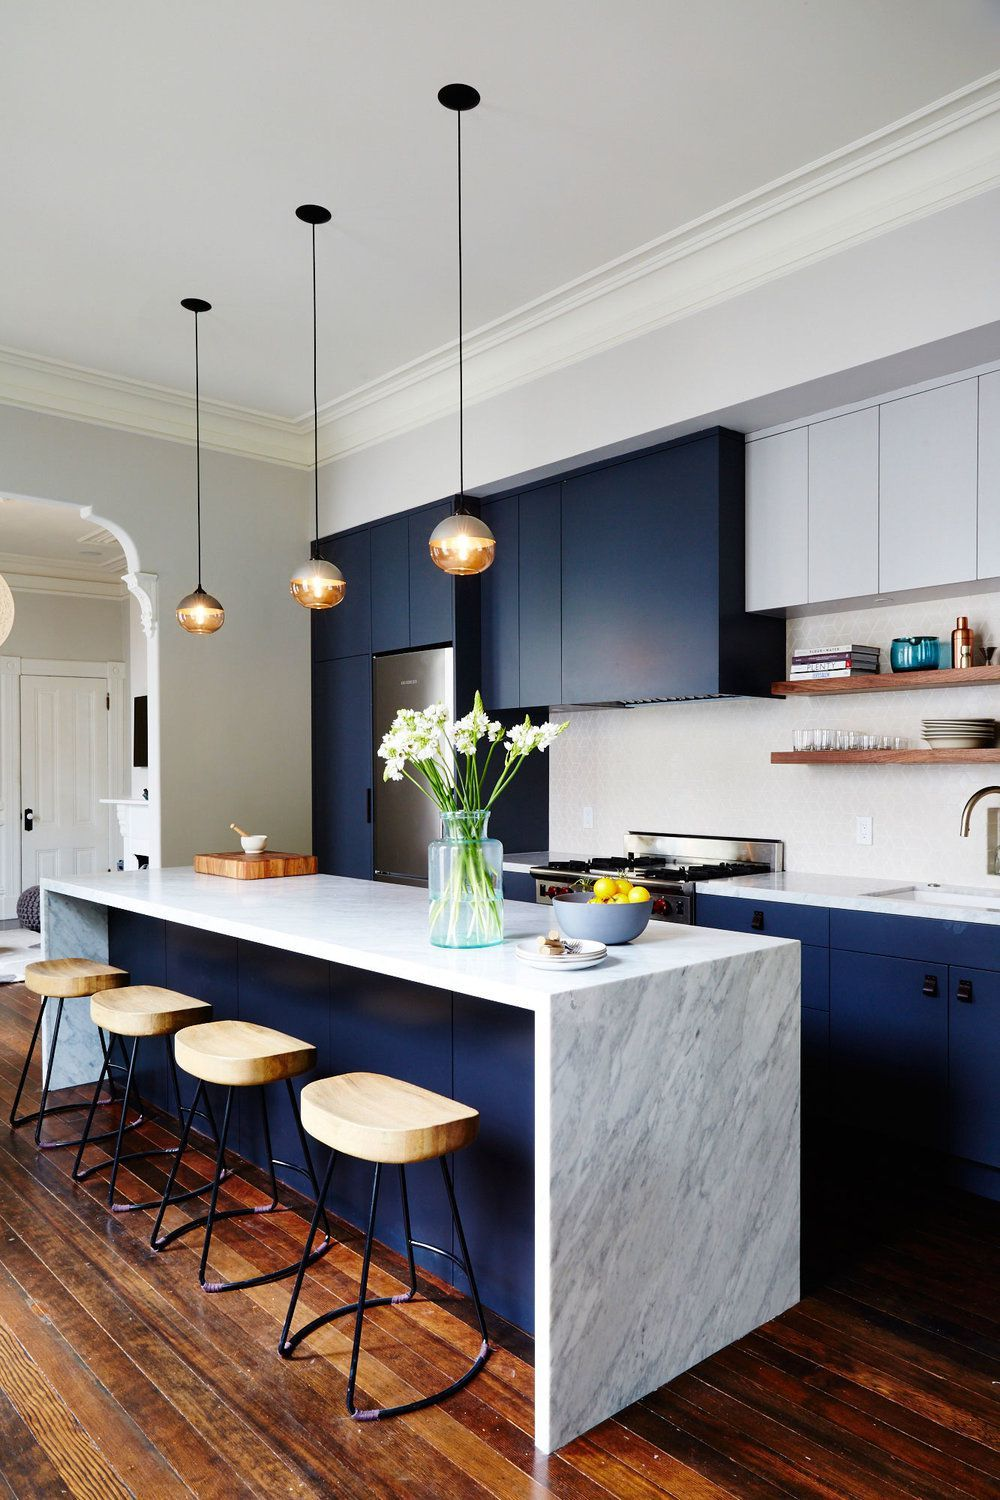 10 kitchen cabinet color combinations you ll actually want to commit to modern kitchen design on kitchen cabinets color combination id=85866